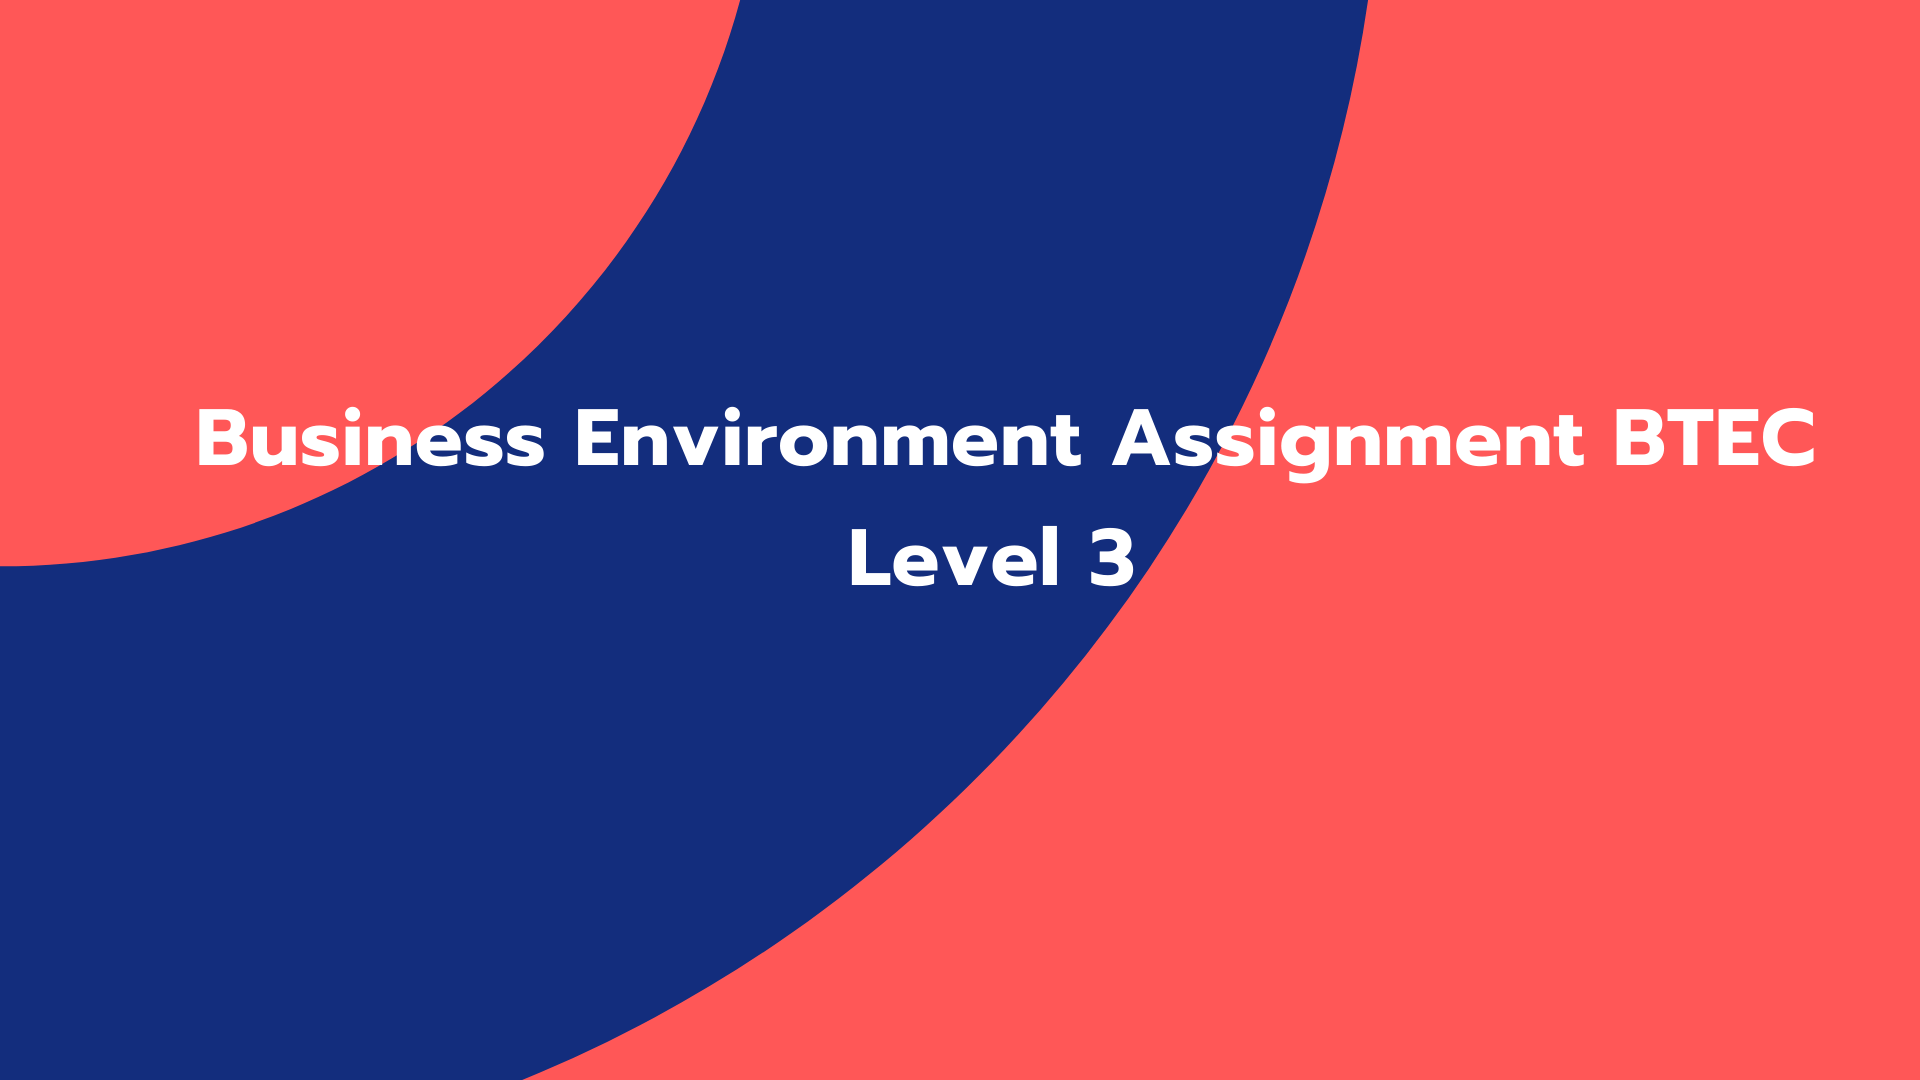 Business Environment Assignment BTEC Level 3